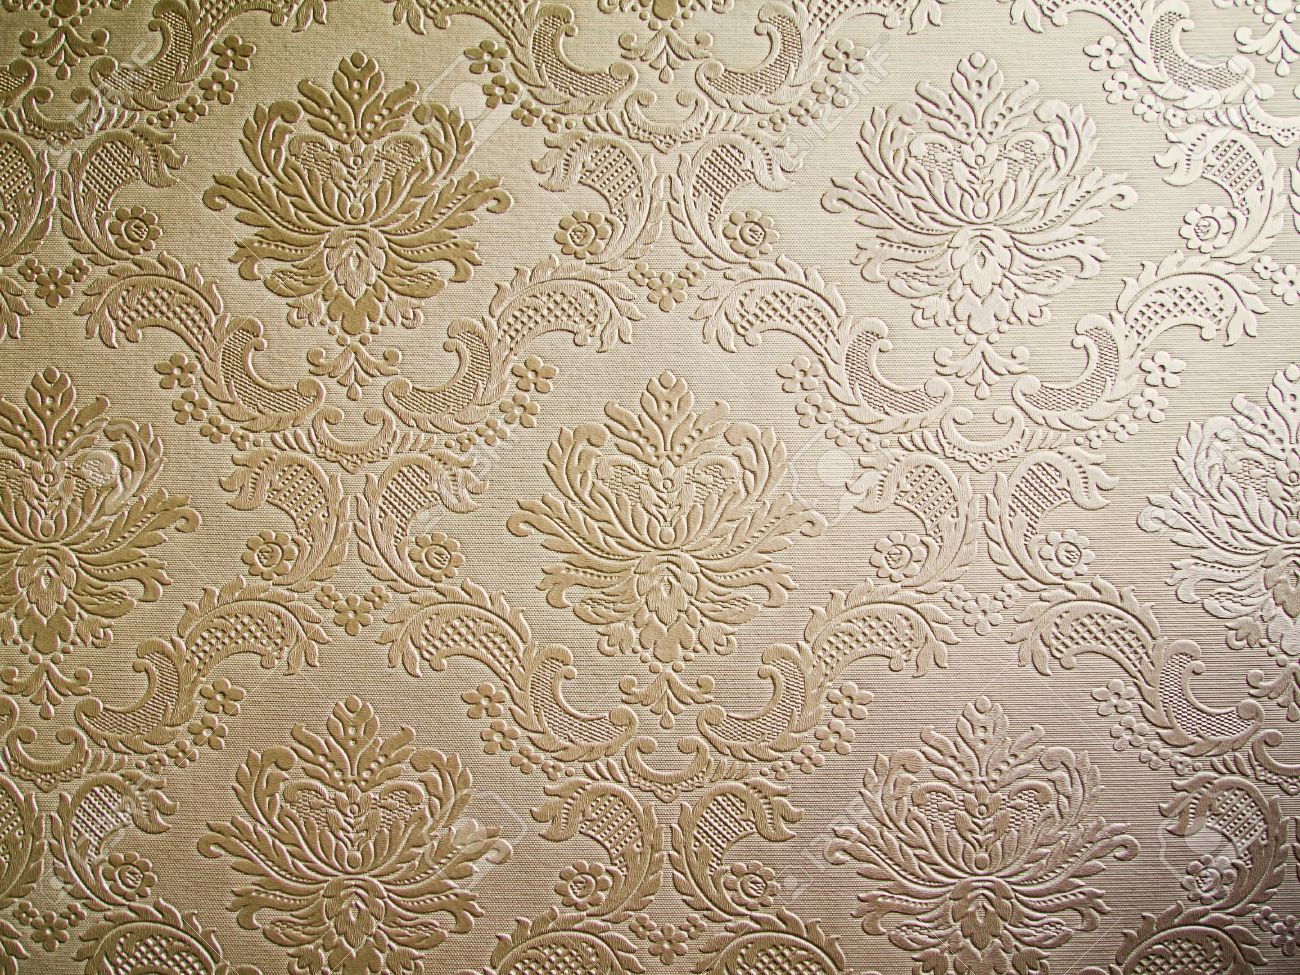 Light Brown Tone Damask Style Wallpaper Pattern Background Stock Photo